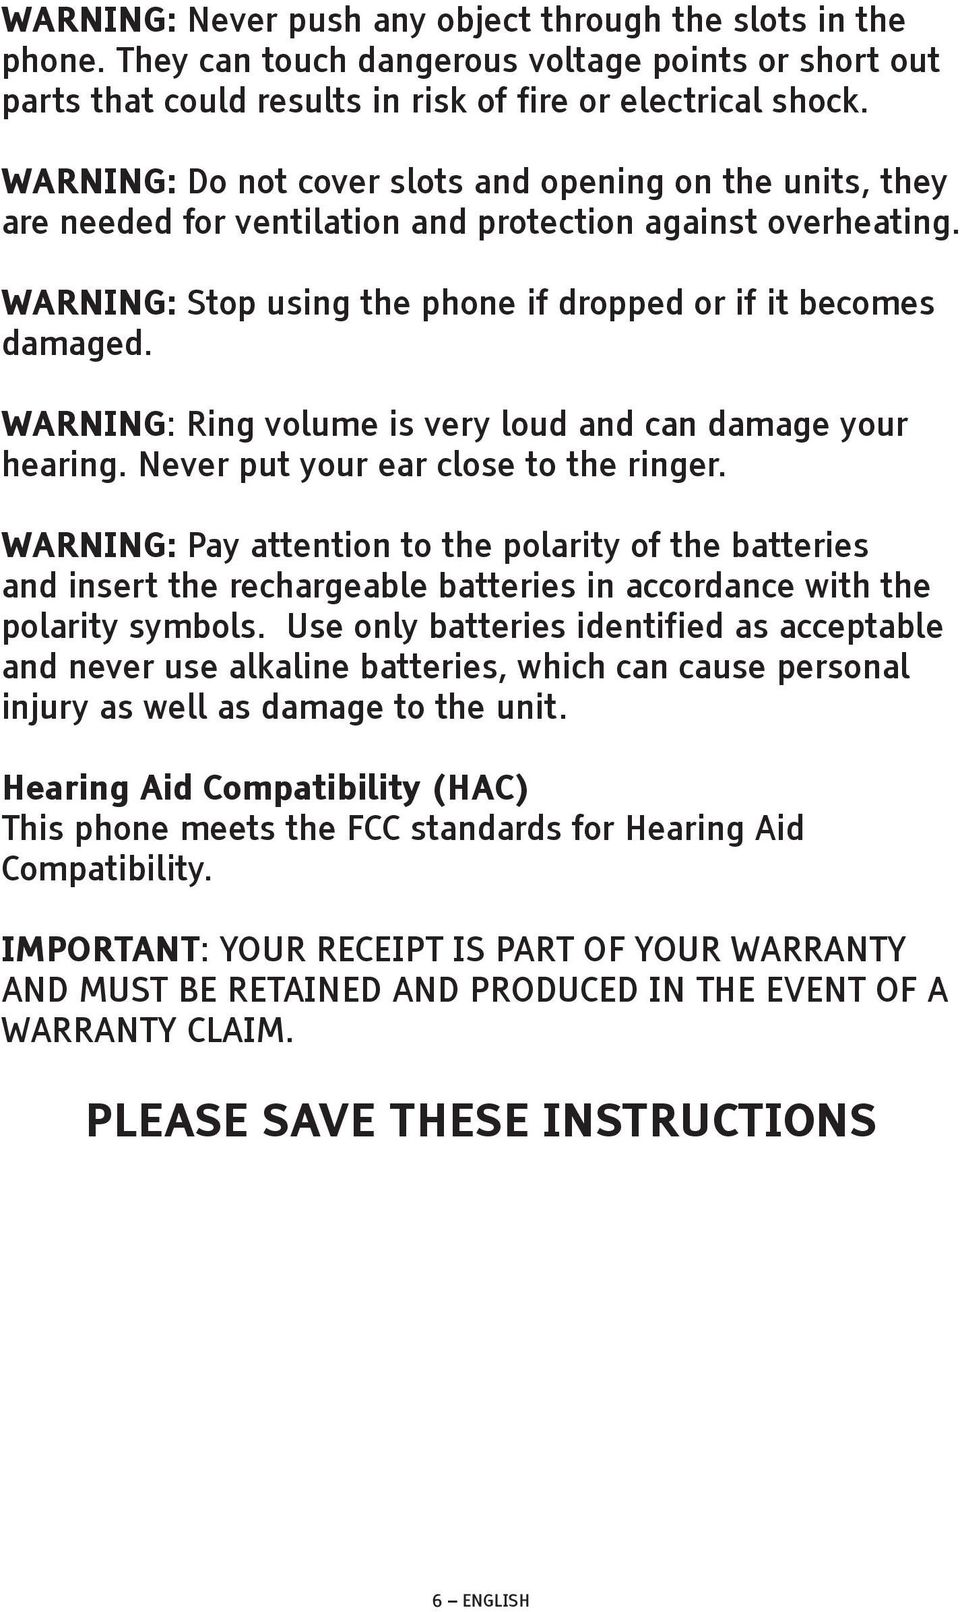 WARNING: Ring volume is very loud and can damage your hearing. Never put your ear close to the ringer.